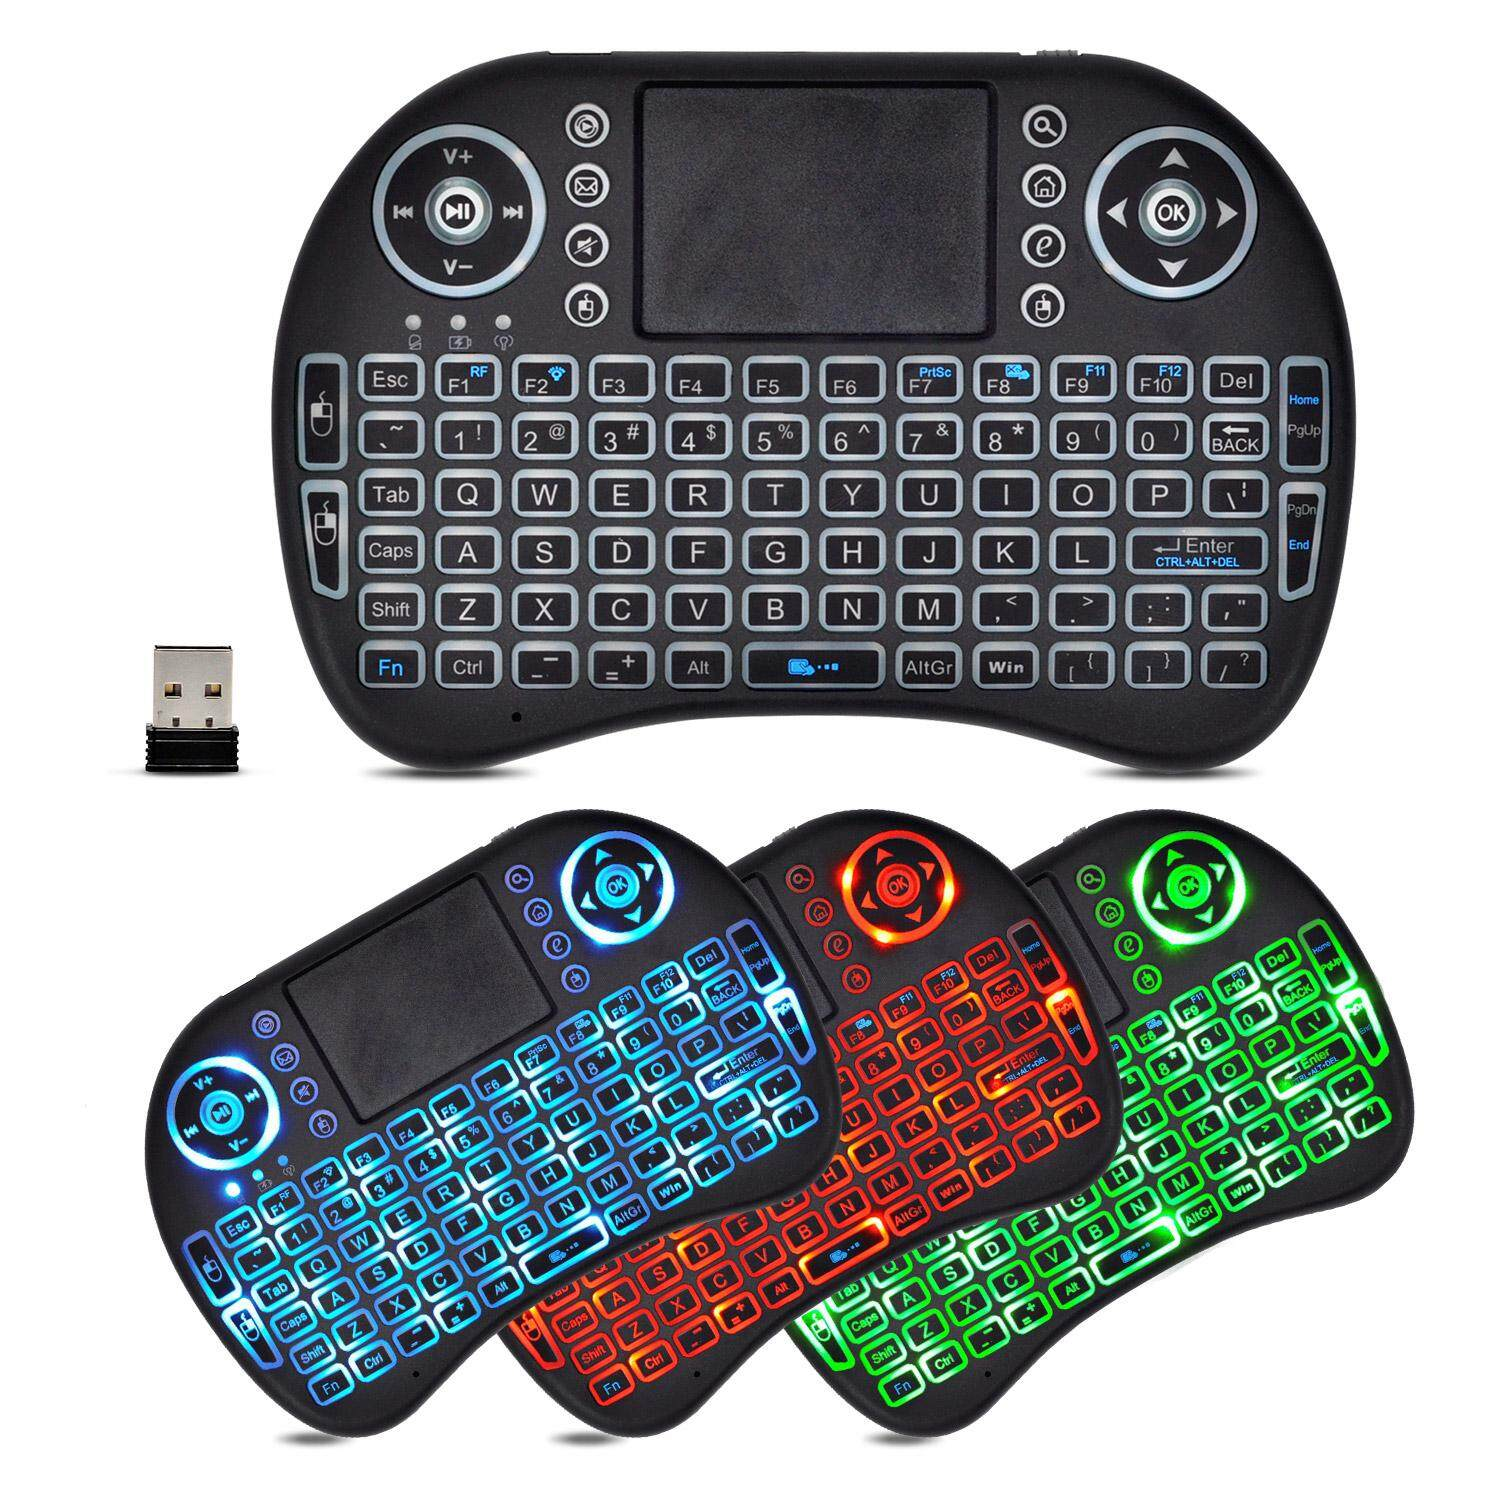 2.4GHz Wireless LED Colorful Backlit Mini Keyboard with Mouse Touchpad and Multimedia Keys for PC, Laptop, Raspberry PI, MacOS, Linux, HTPC, IPTV, Android Smart TV Box, XBMC, Windows 7 8 10(92key, Black and 3 Color Light) Malaysia